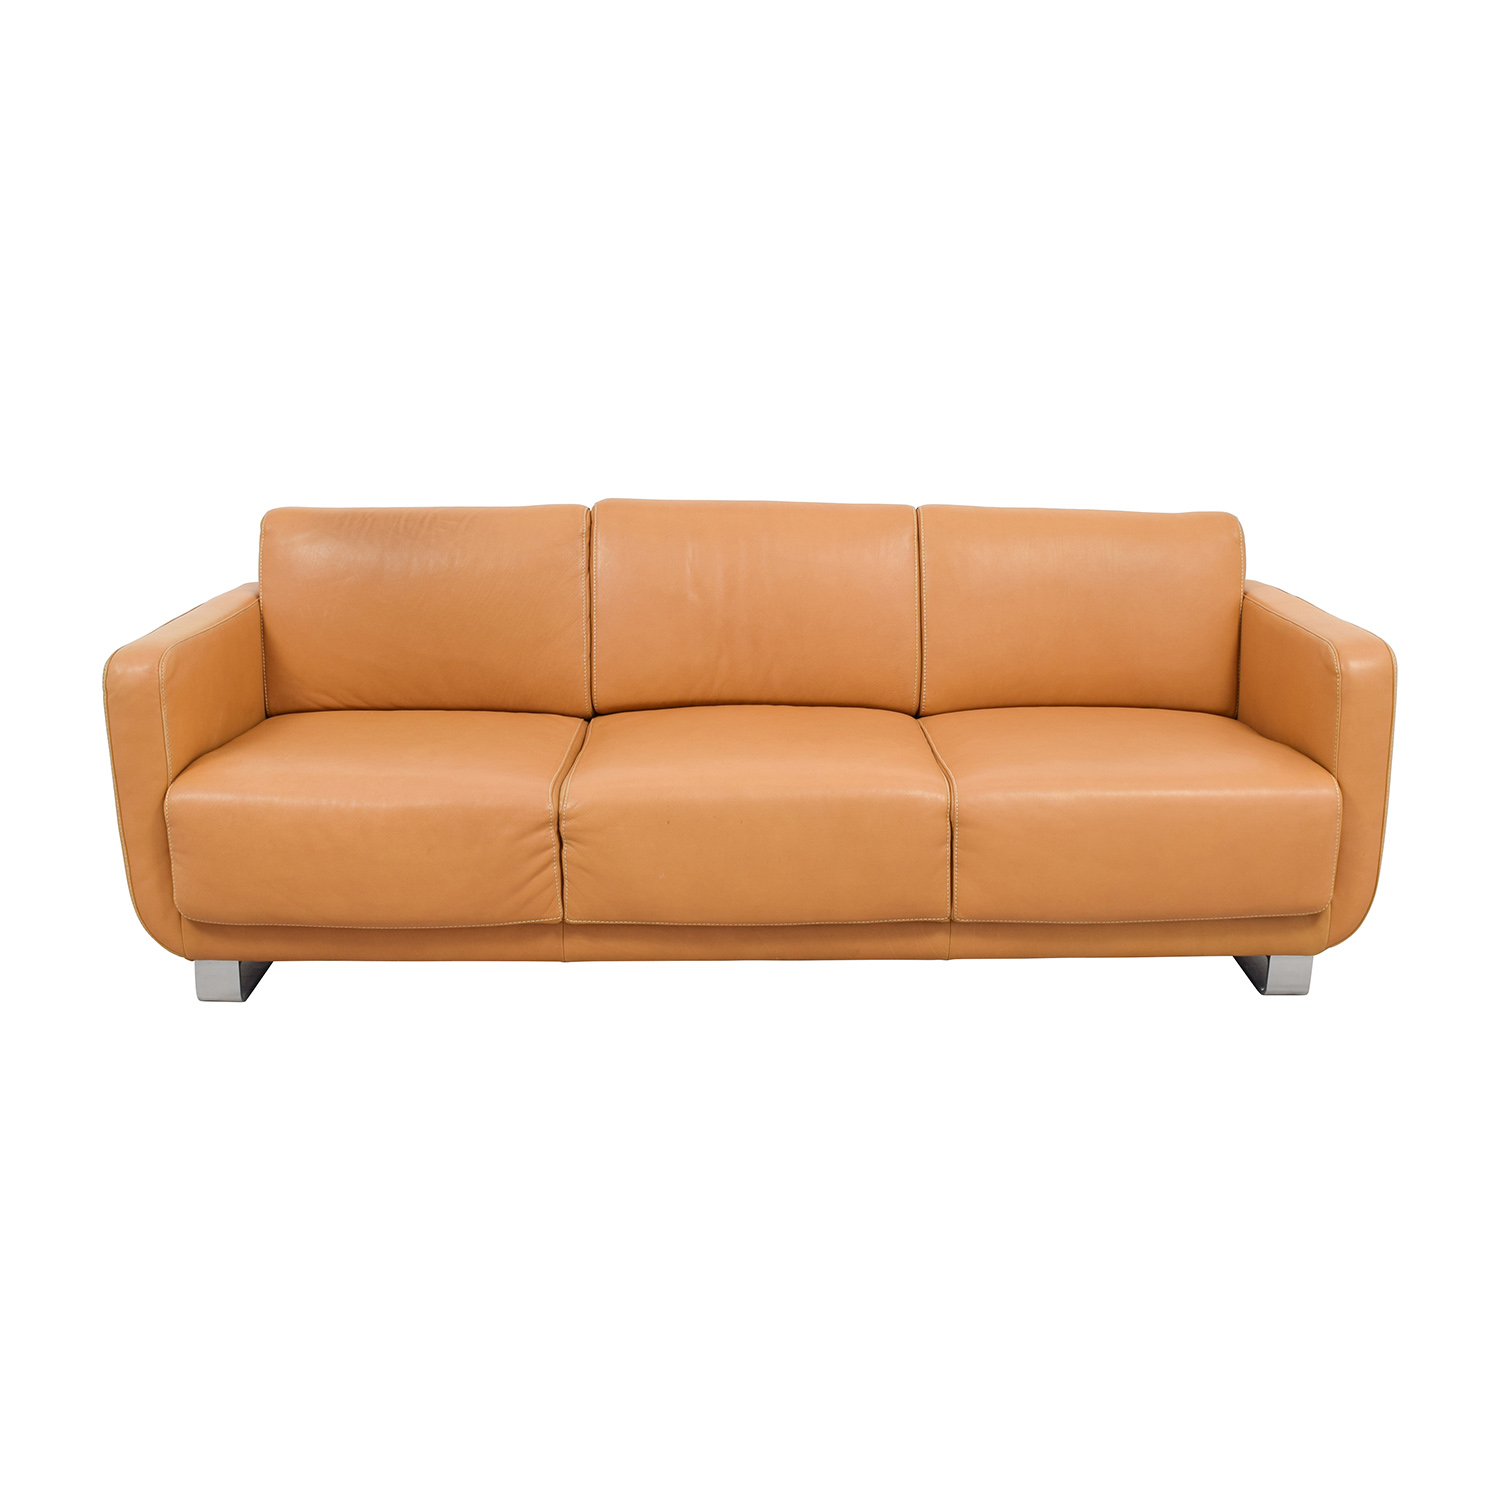 W Schillig Light Brown Leather Sofa Clic Sofas